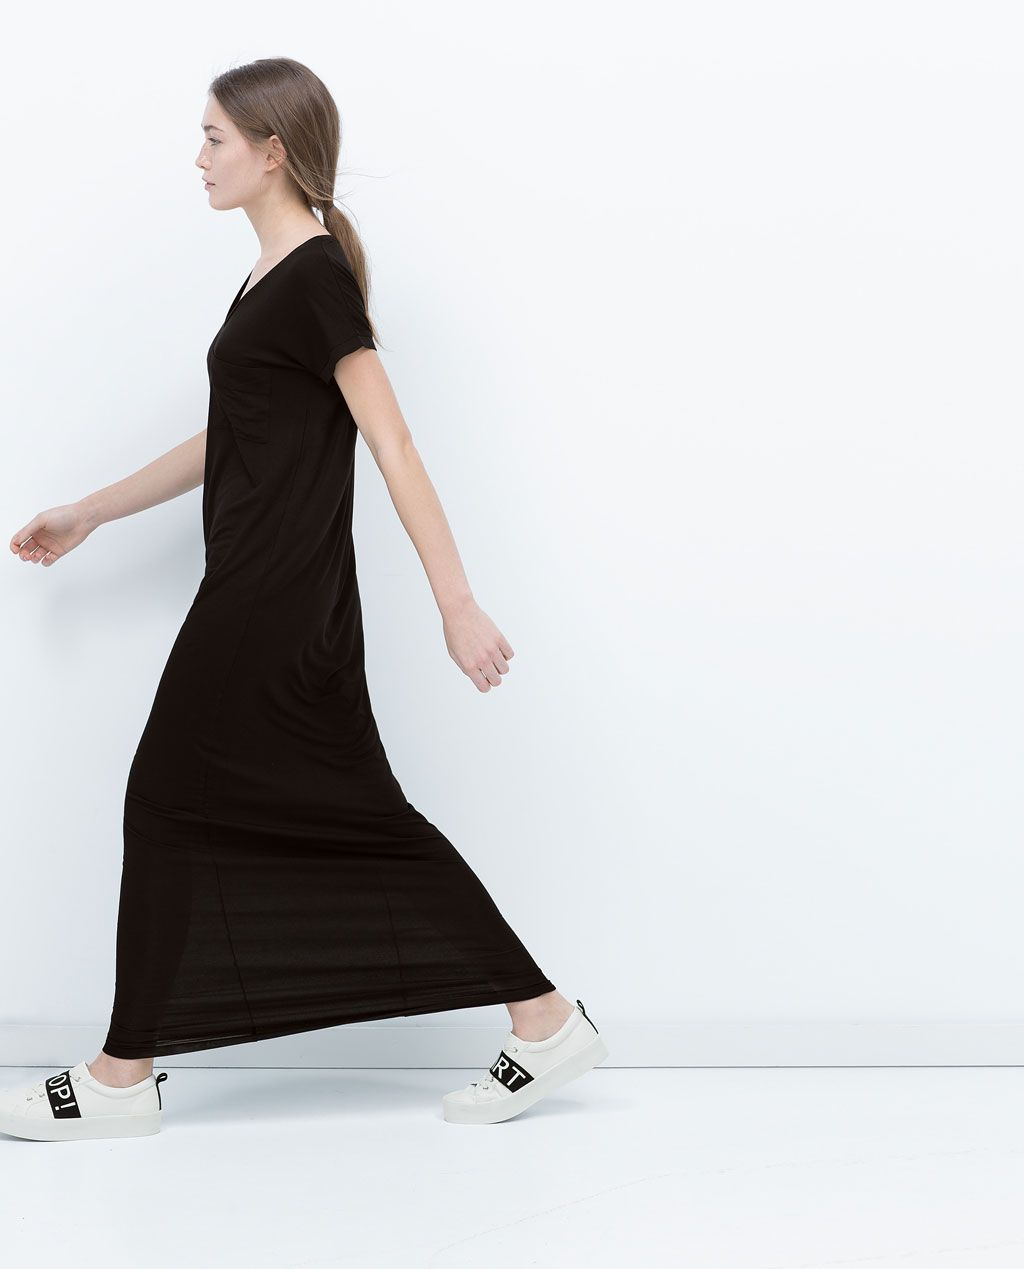 Black t shirt dress zara - The Perfect T Shirt Dress Zara And It S Only 22 Perfect For Running Around